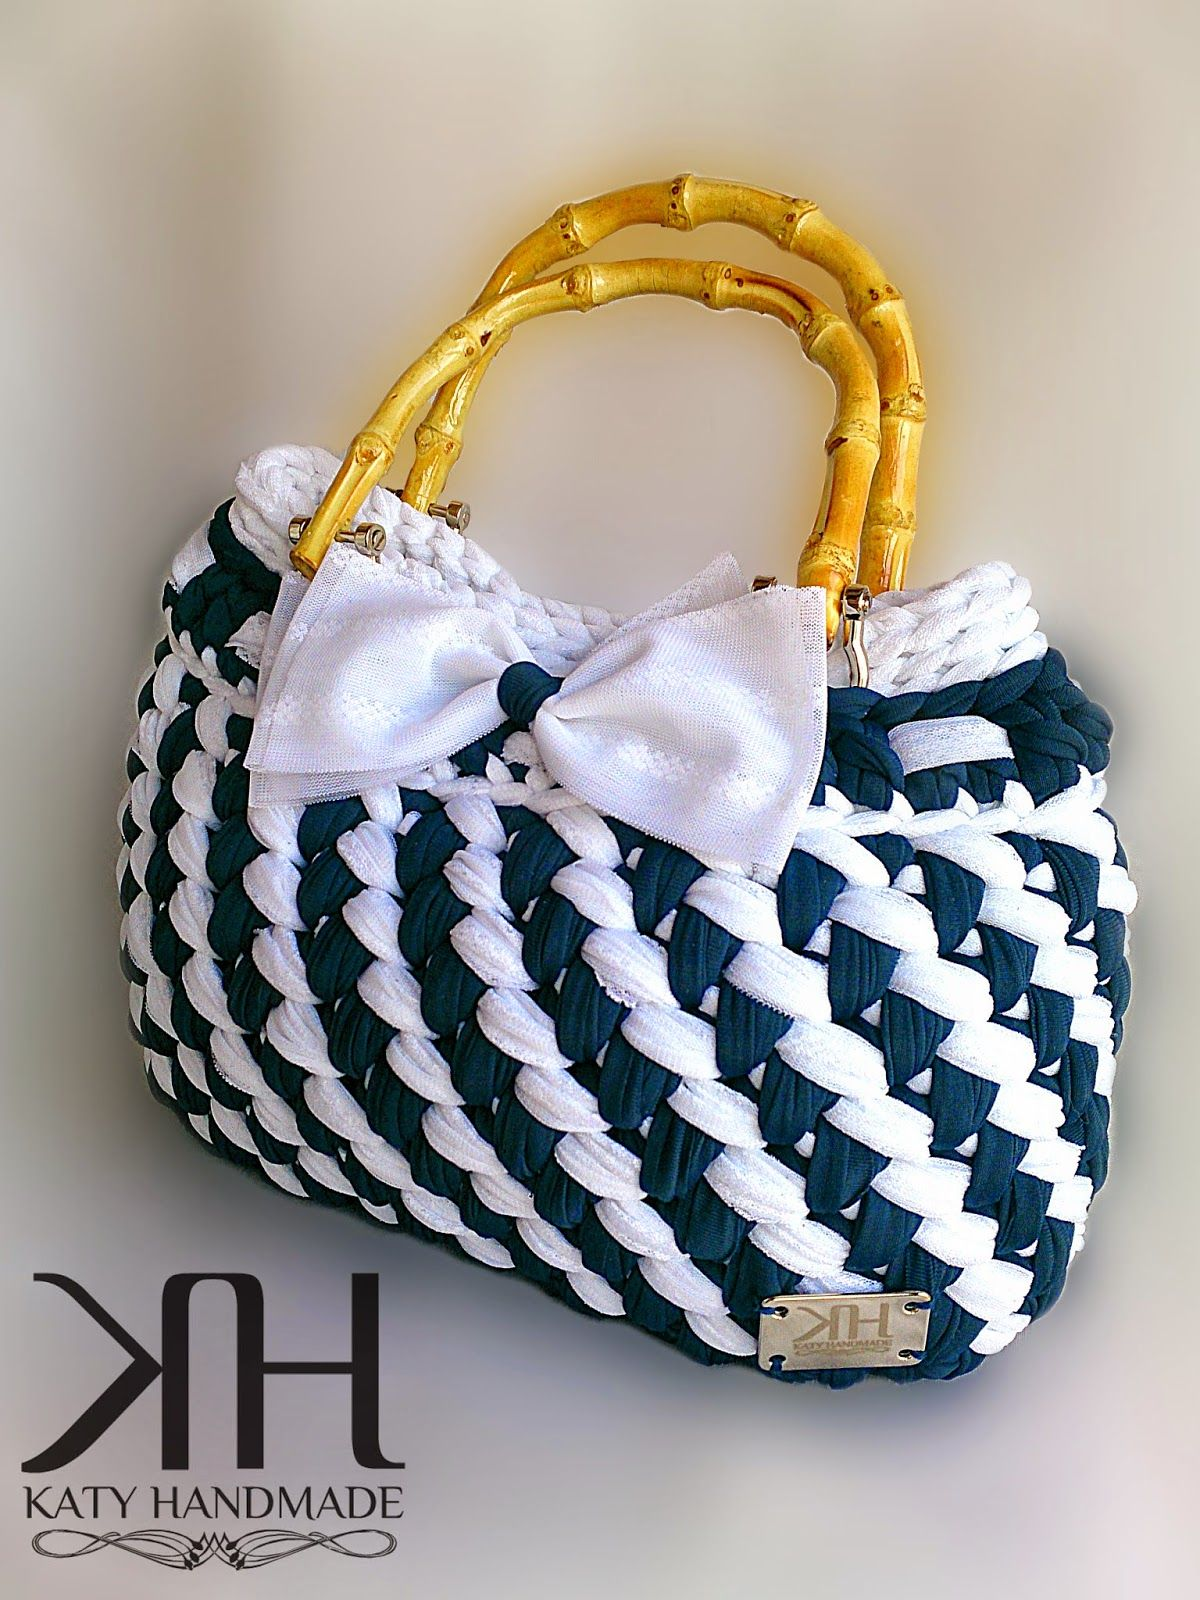 Knit crochet bags do-it-yourself workshop with photo and video